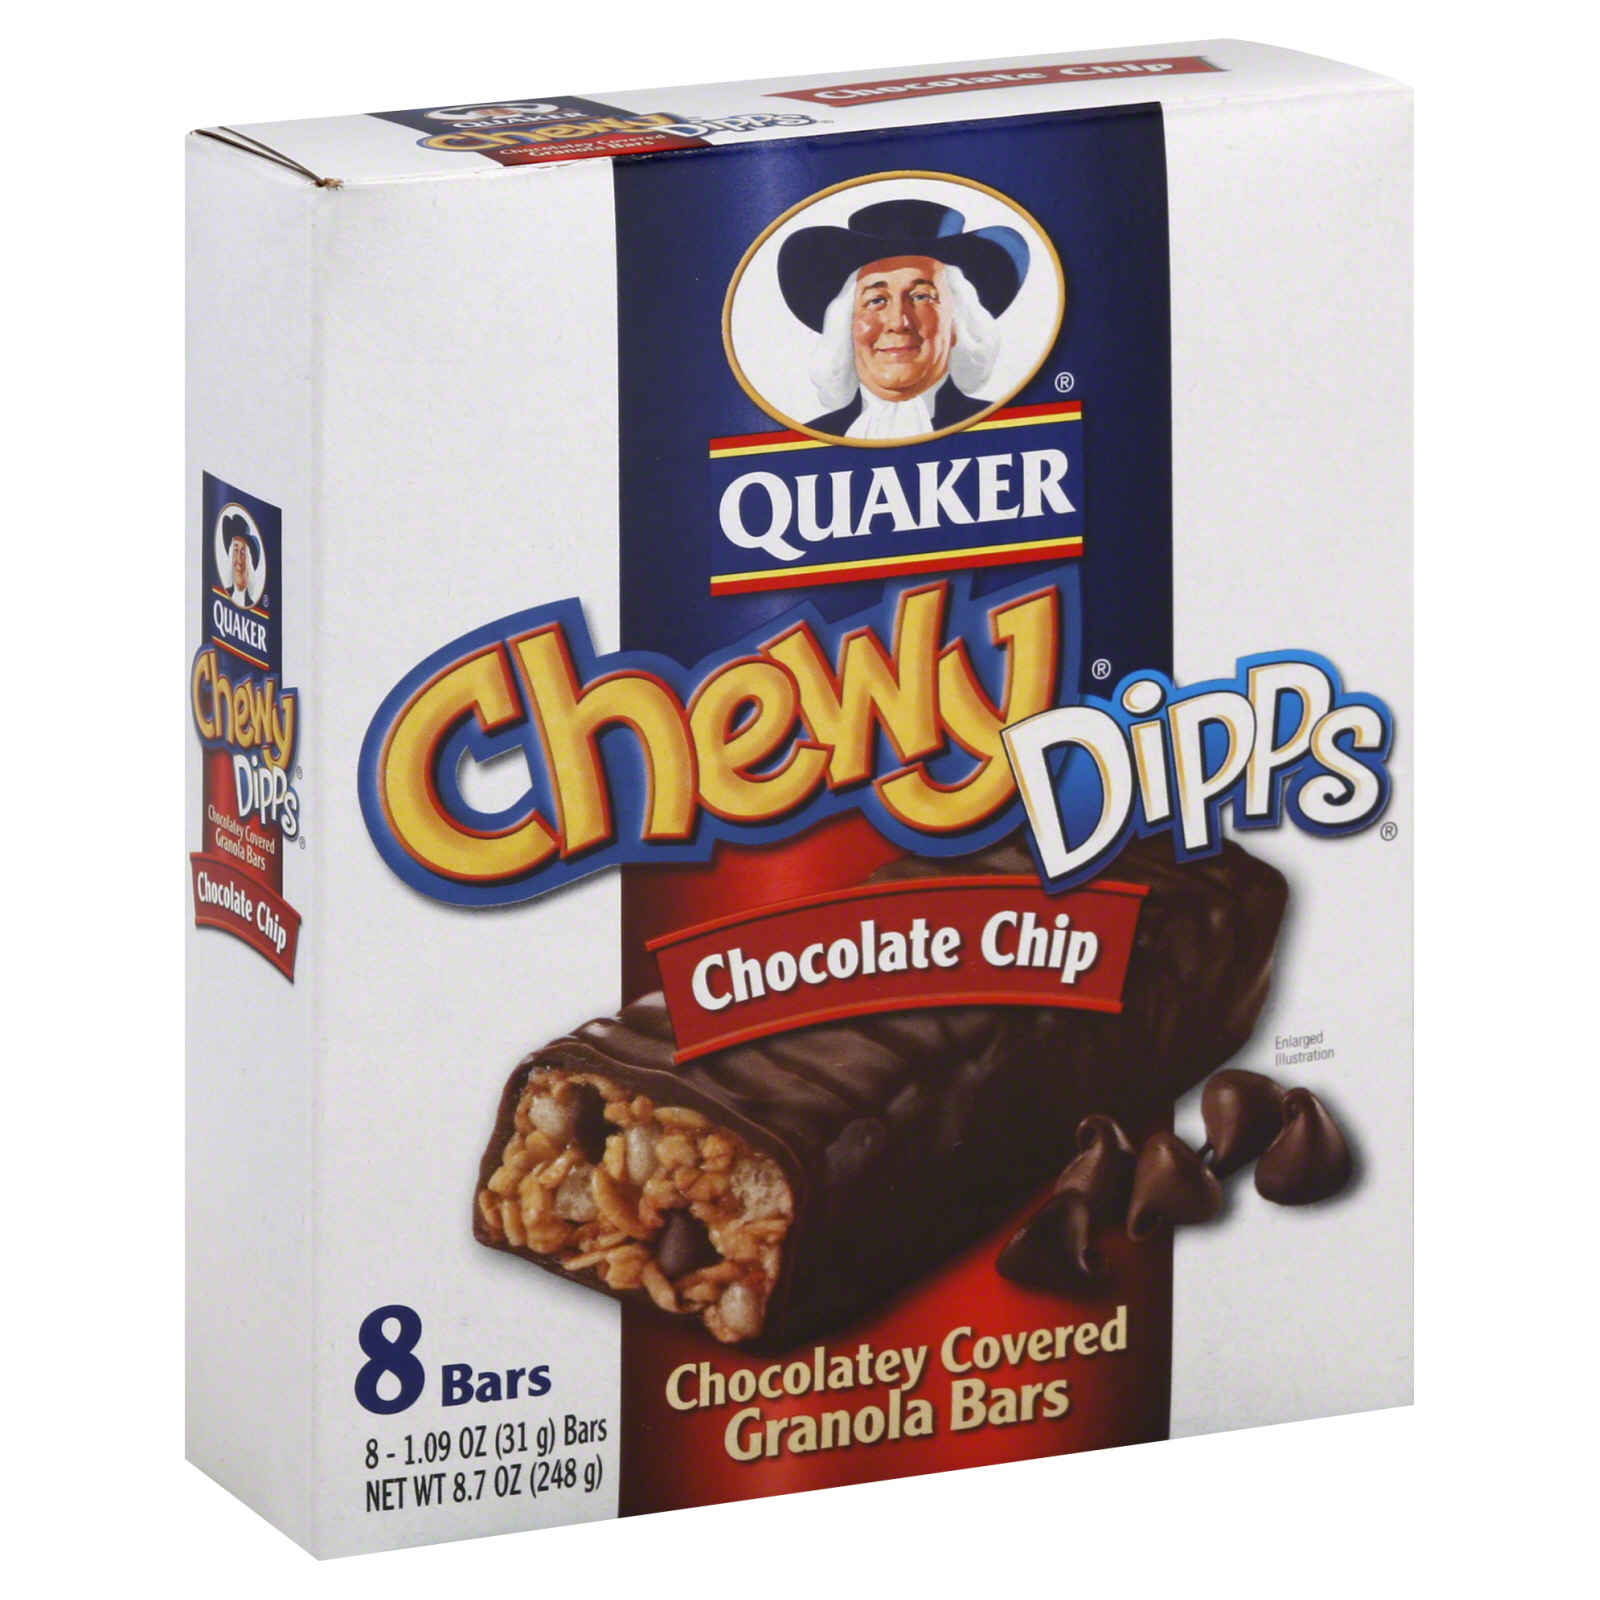 Quaker Chewy Dipps Chocolate Chip Granola Bars Food Product Image